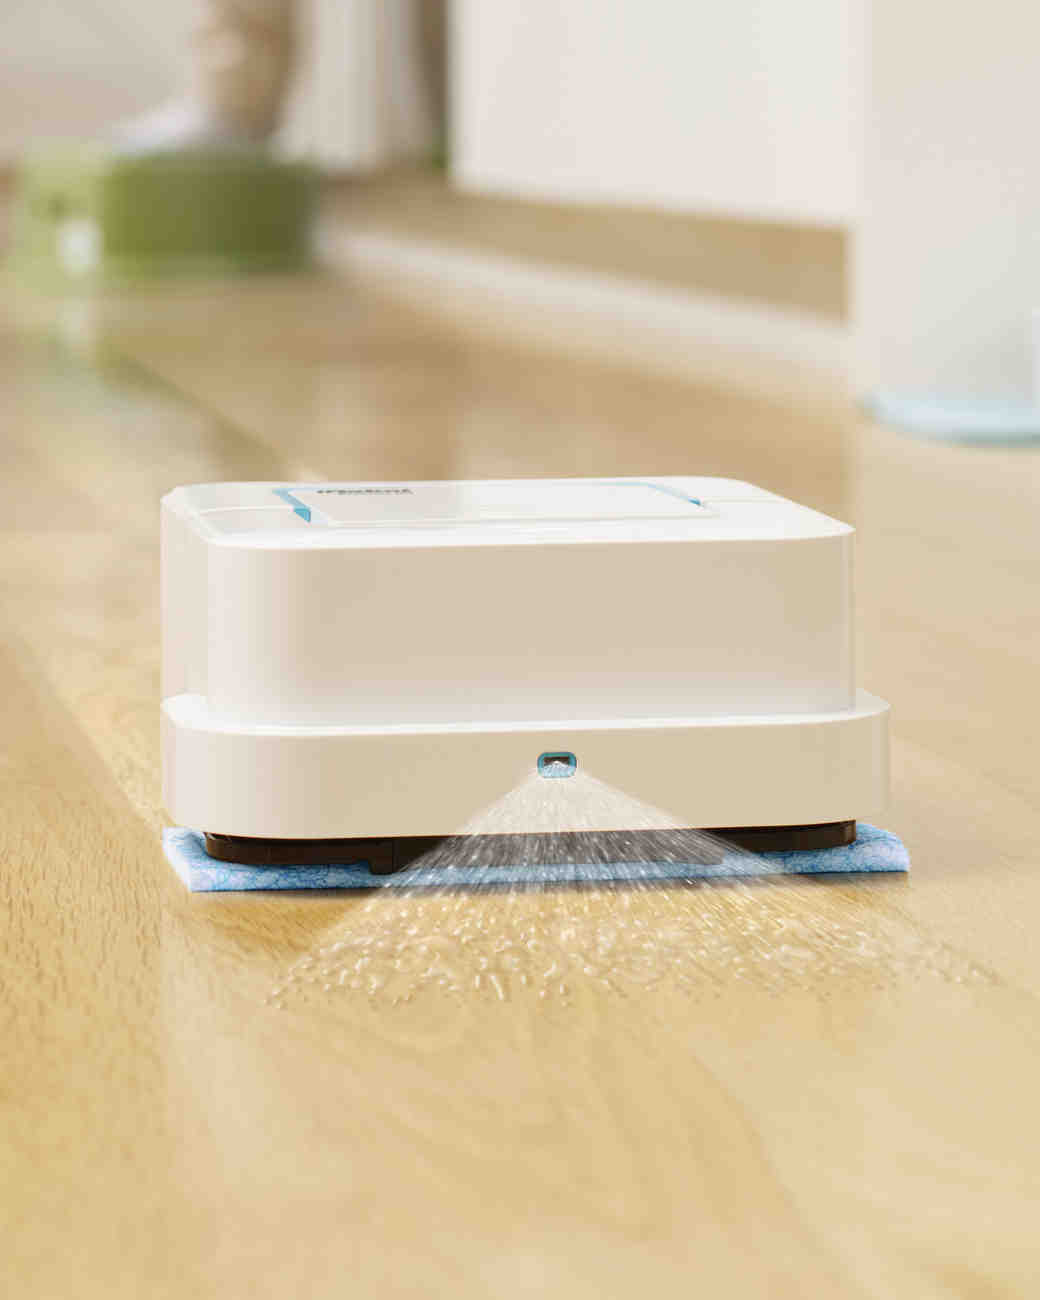 irobot braava jet kitchen